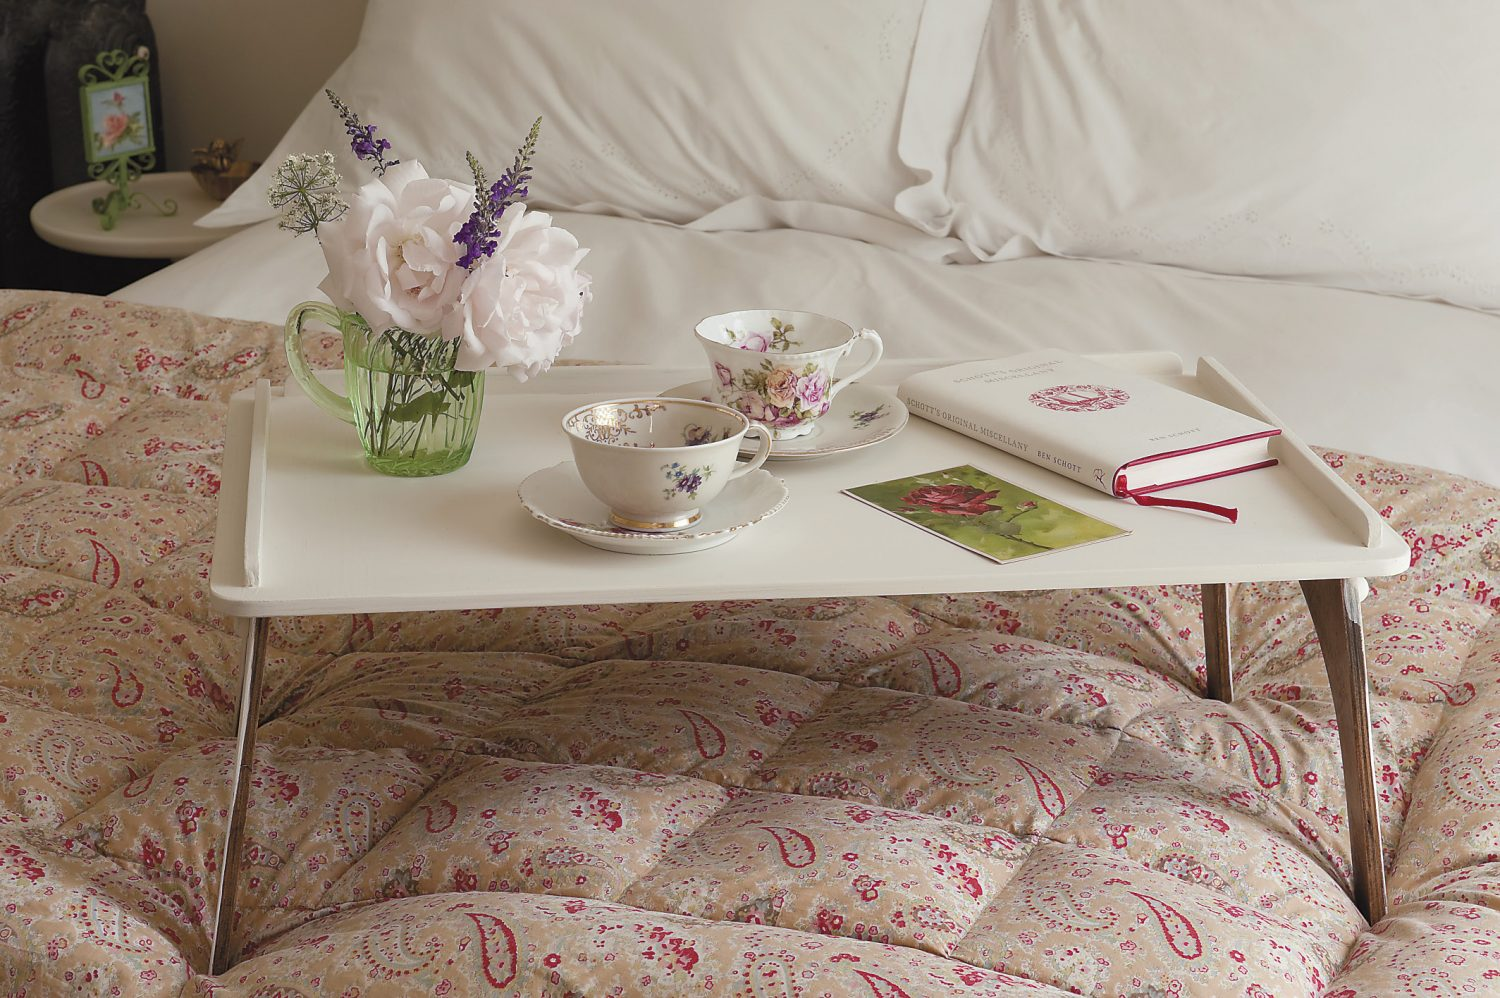 Vickie's enviable eye for detail is evident in every room of the house. Here in the ground-floor guest bedroom, a breakfast tray is laid out on the paisley bedspread in anticipation of the arrival of the next guests